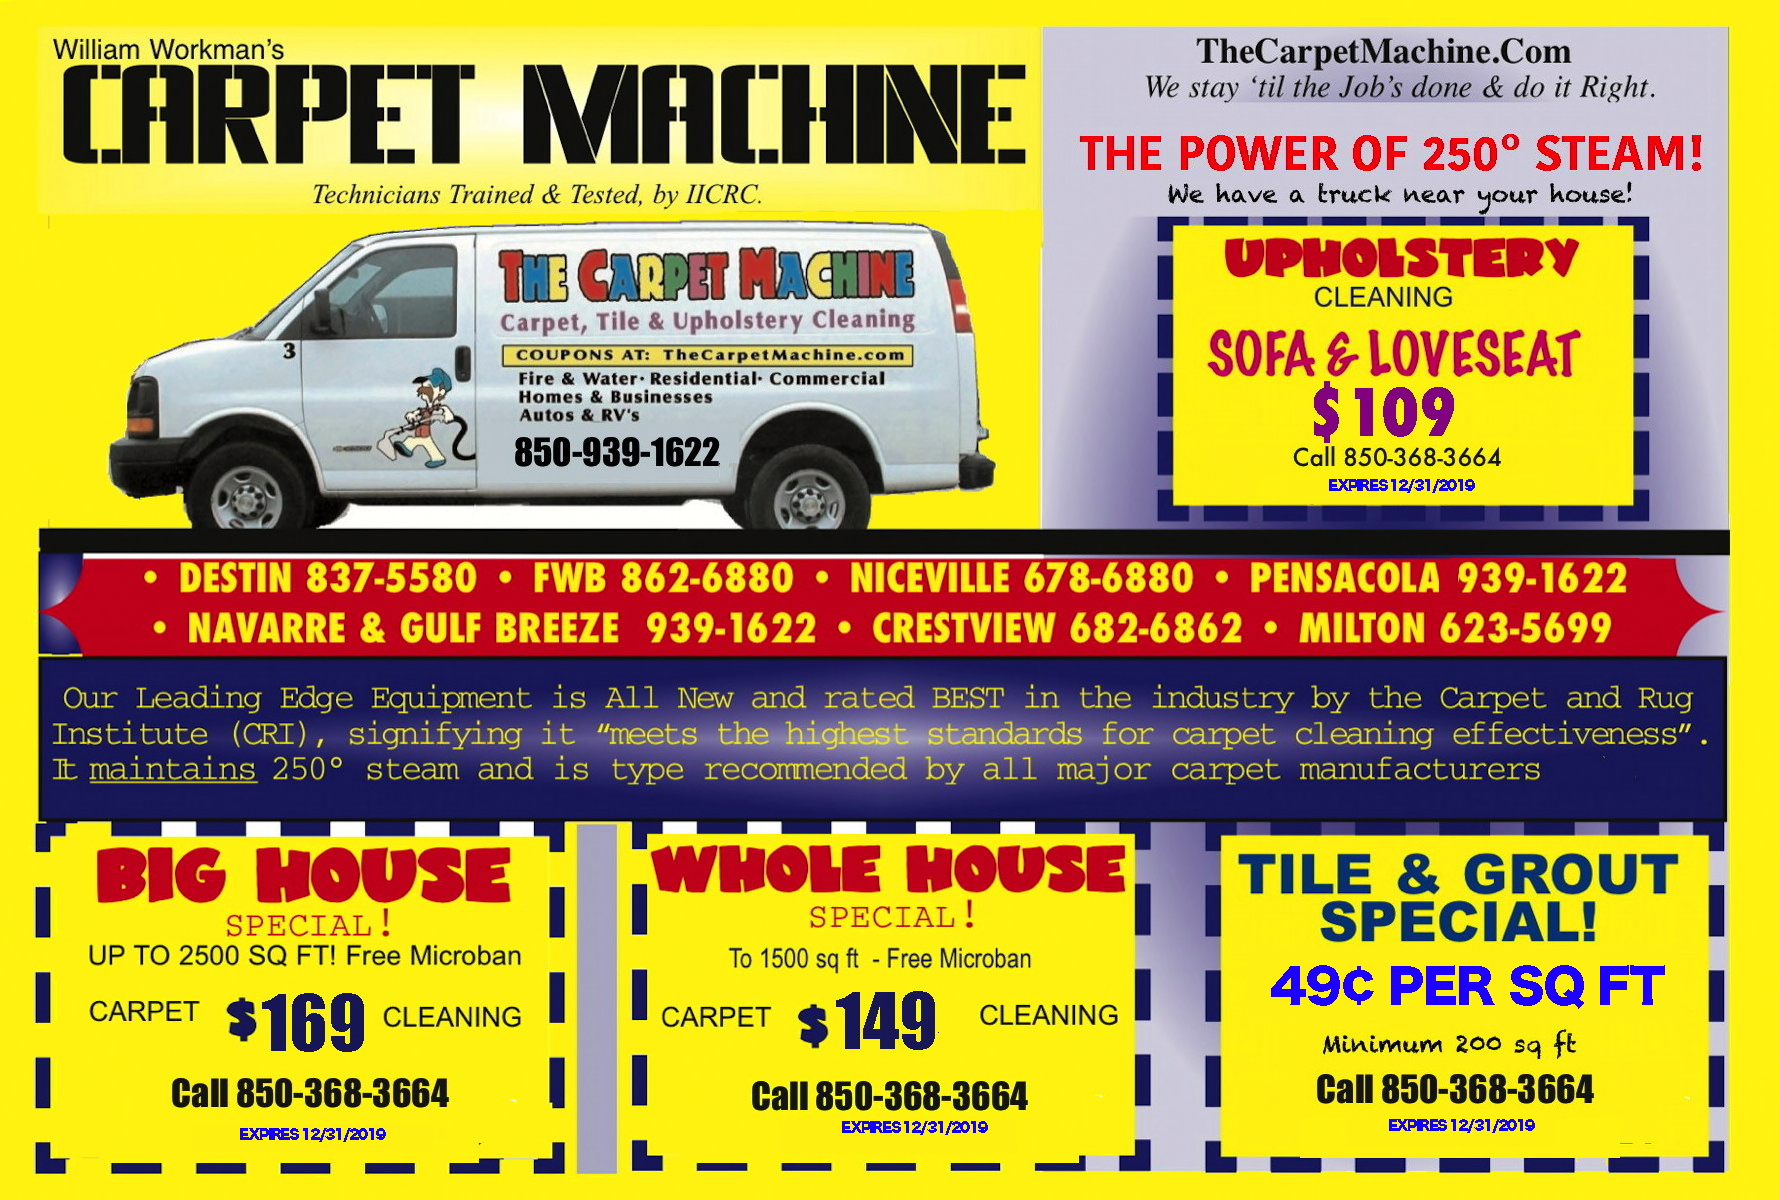 Carpet, Tile & Upholstery Cleaning Coupons